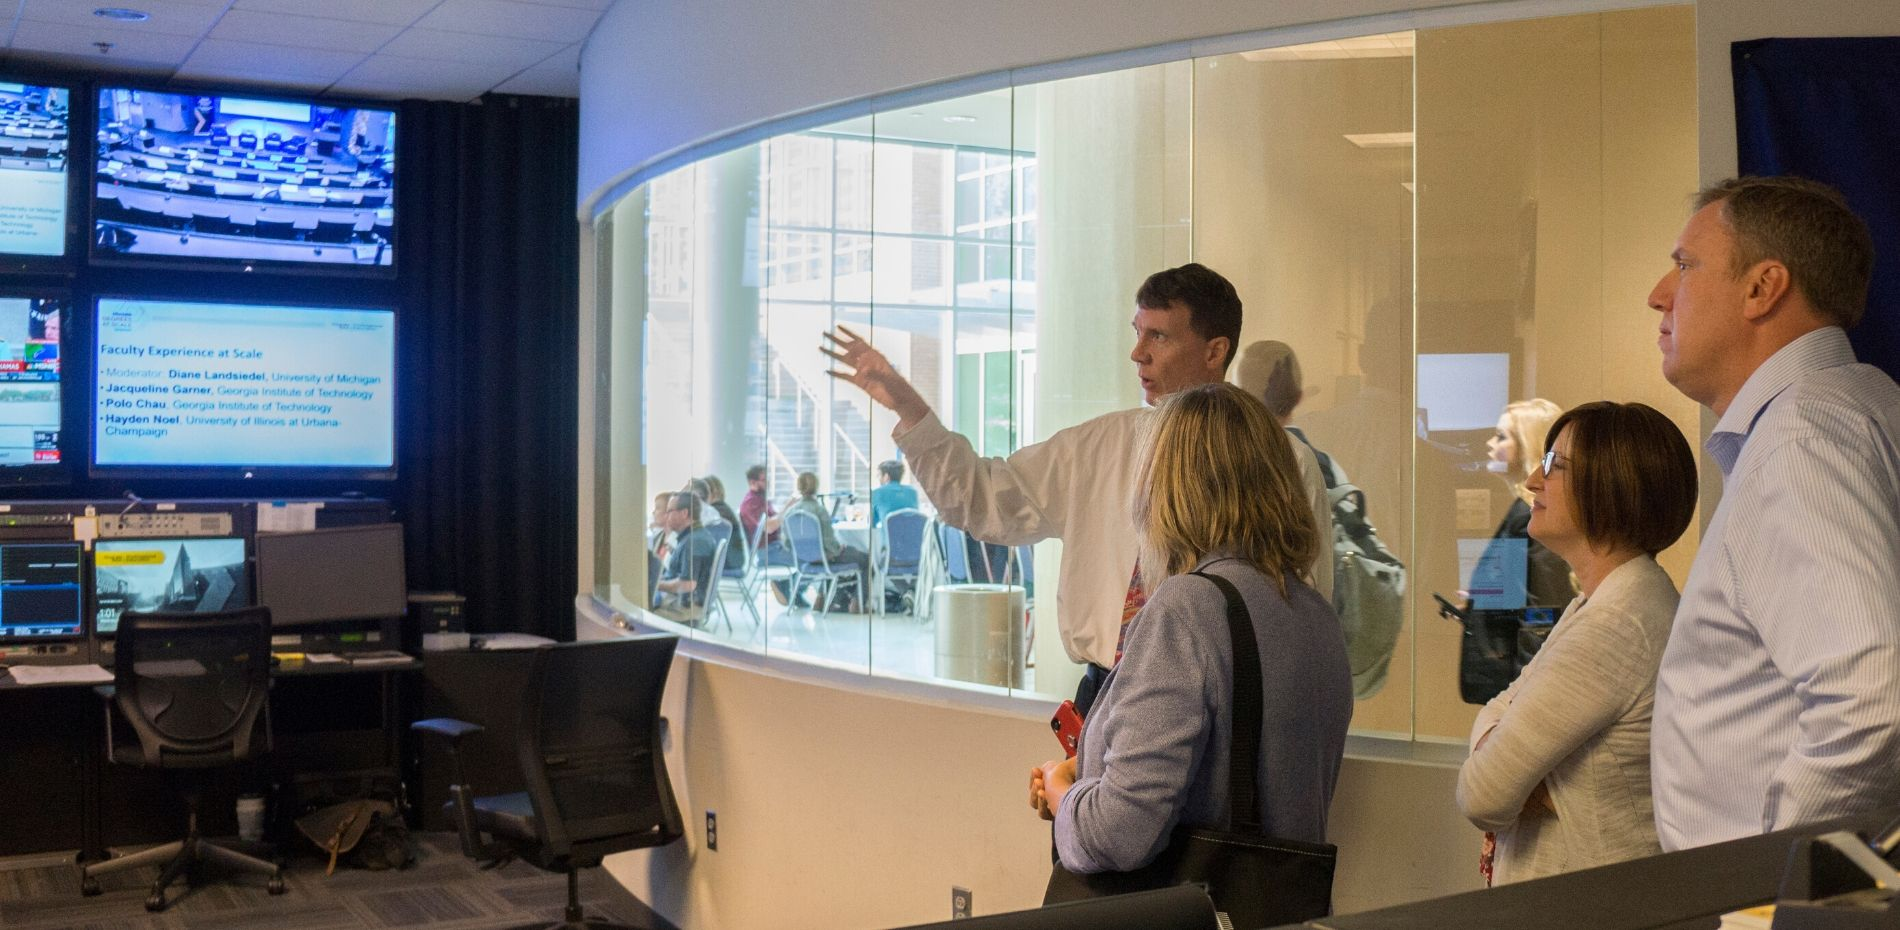 Ed Bailey, online instructional media supervisor, providing symposium attendees an inside-glimpse of the studio where Georgia Tech's online and distance learning programs are produced.